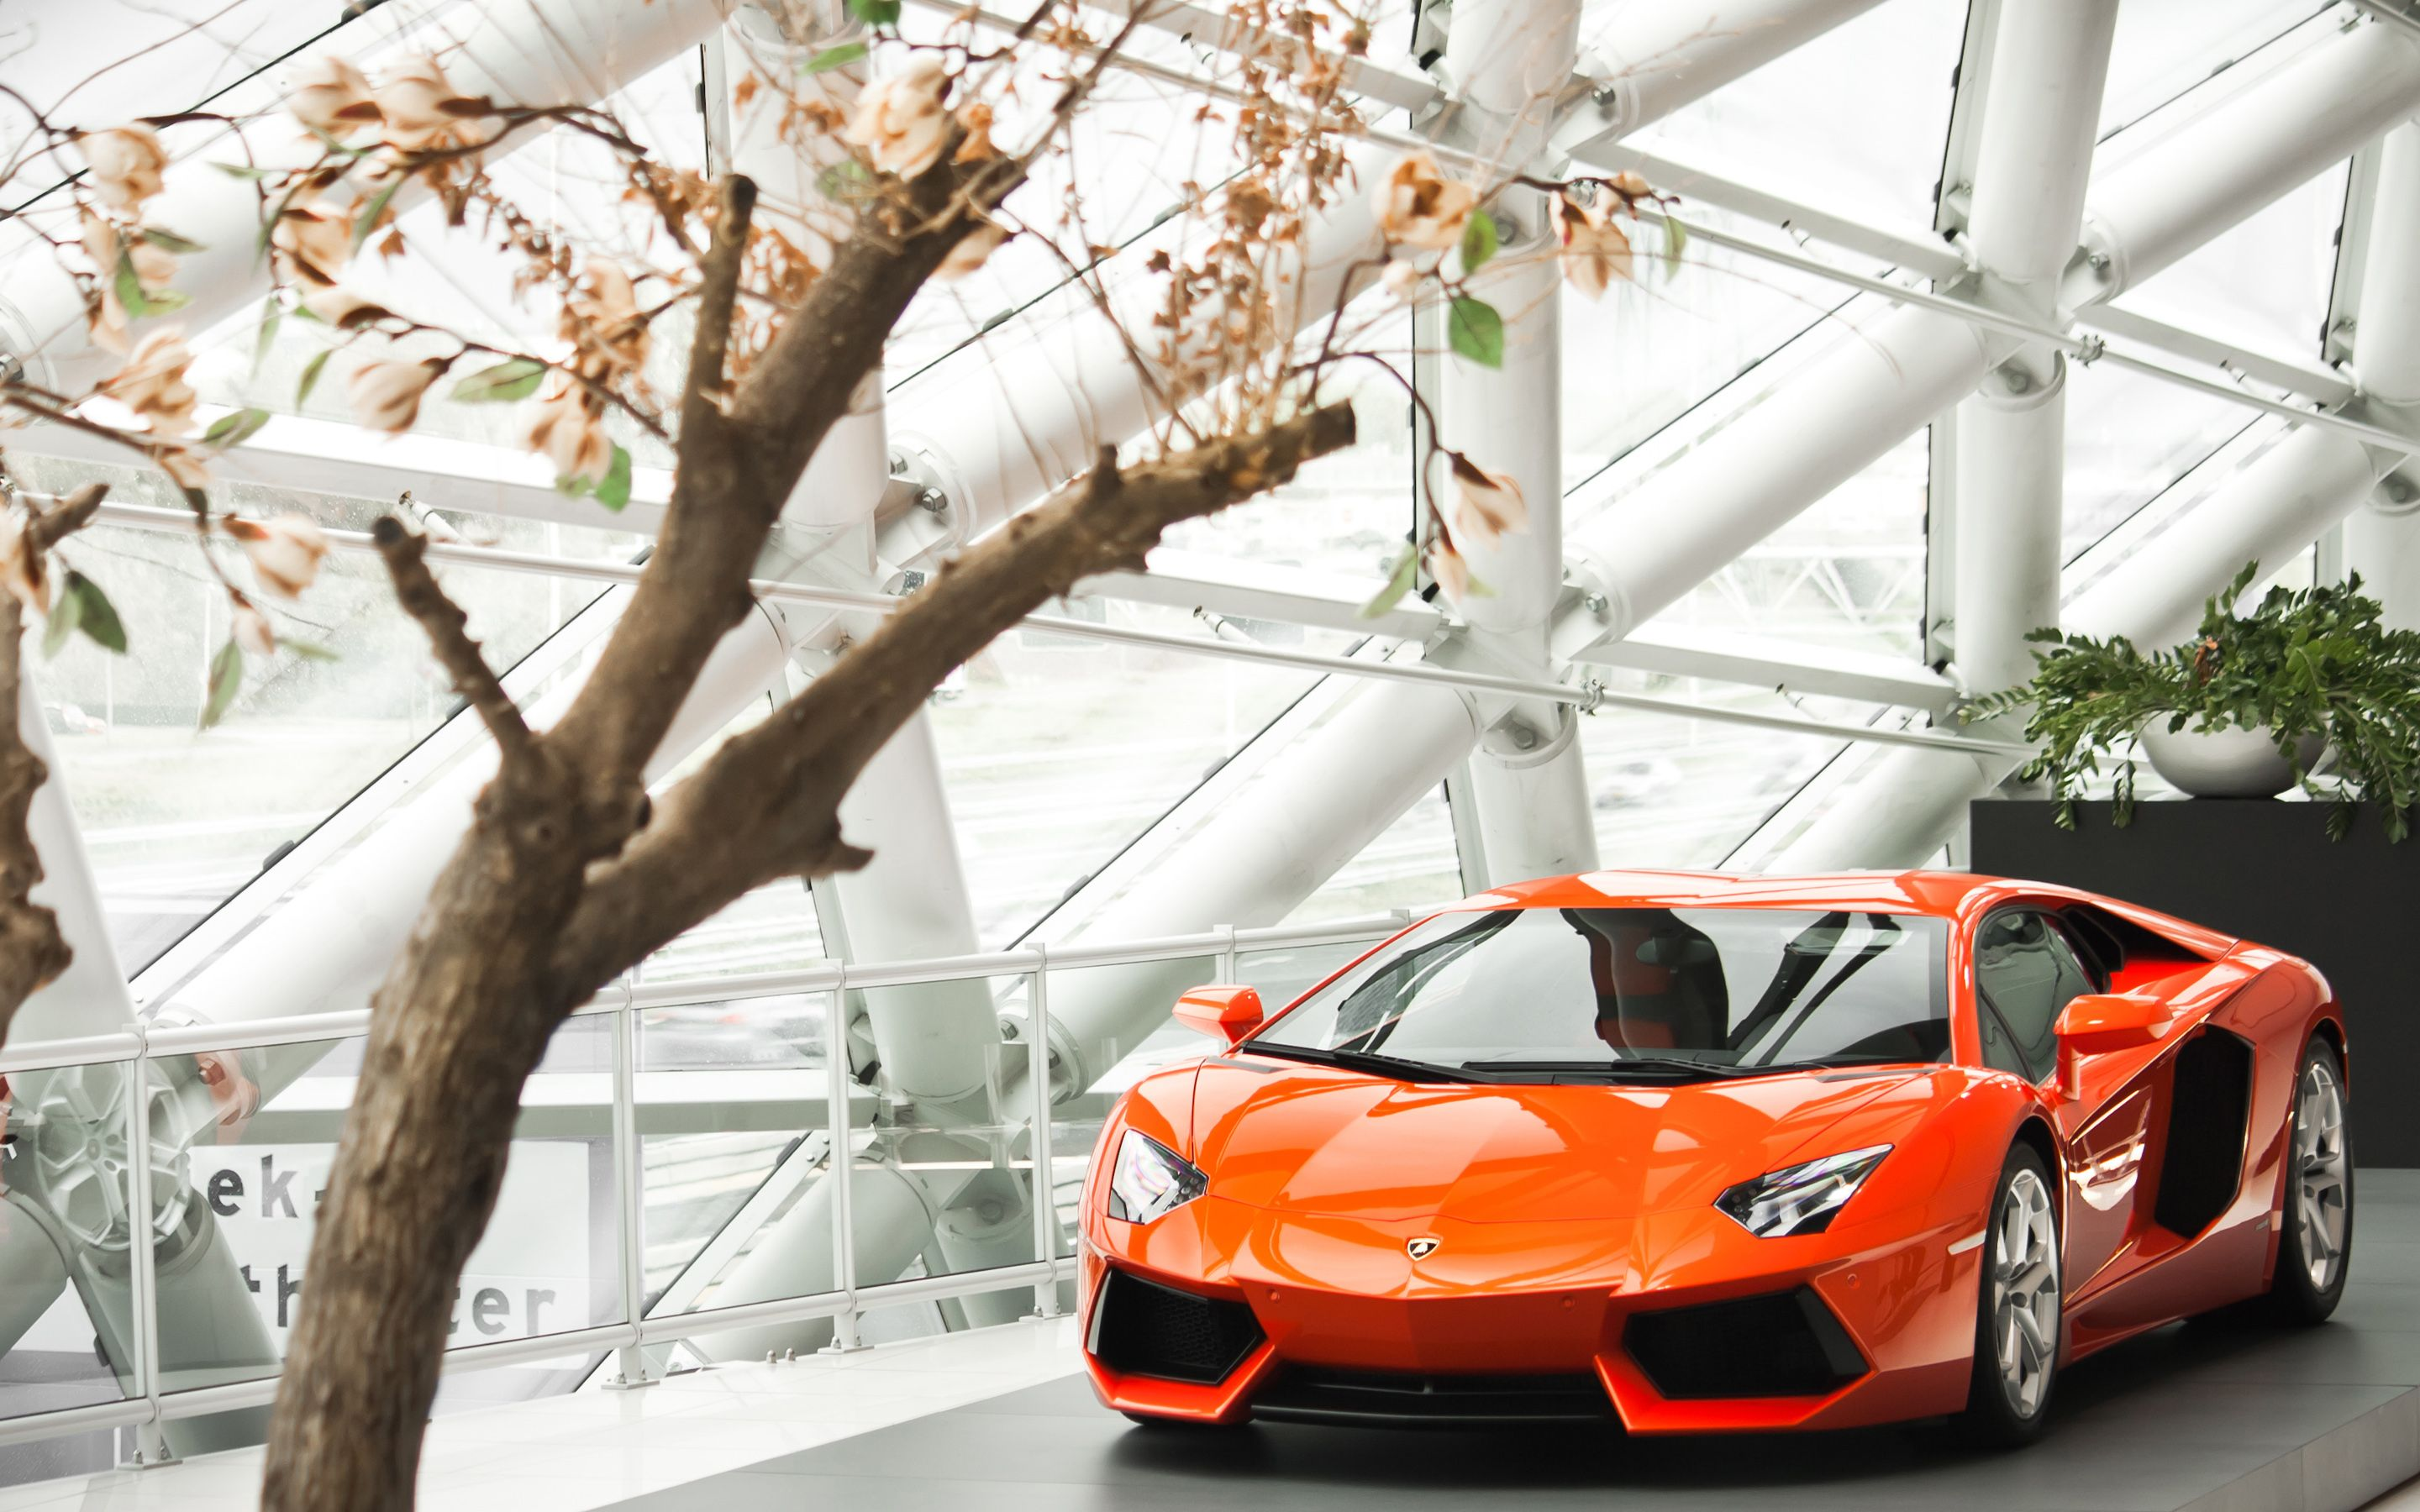 Cars like the lamborghini aventador give more information than we know what to do with. Lamborghini Aventador Wallpaper Lamborghini Aventador Wallpaper Lamborghini Aventador Lamborghini Aventador Lp700 4